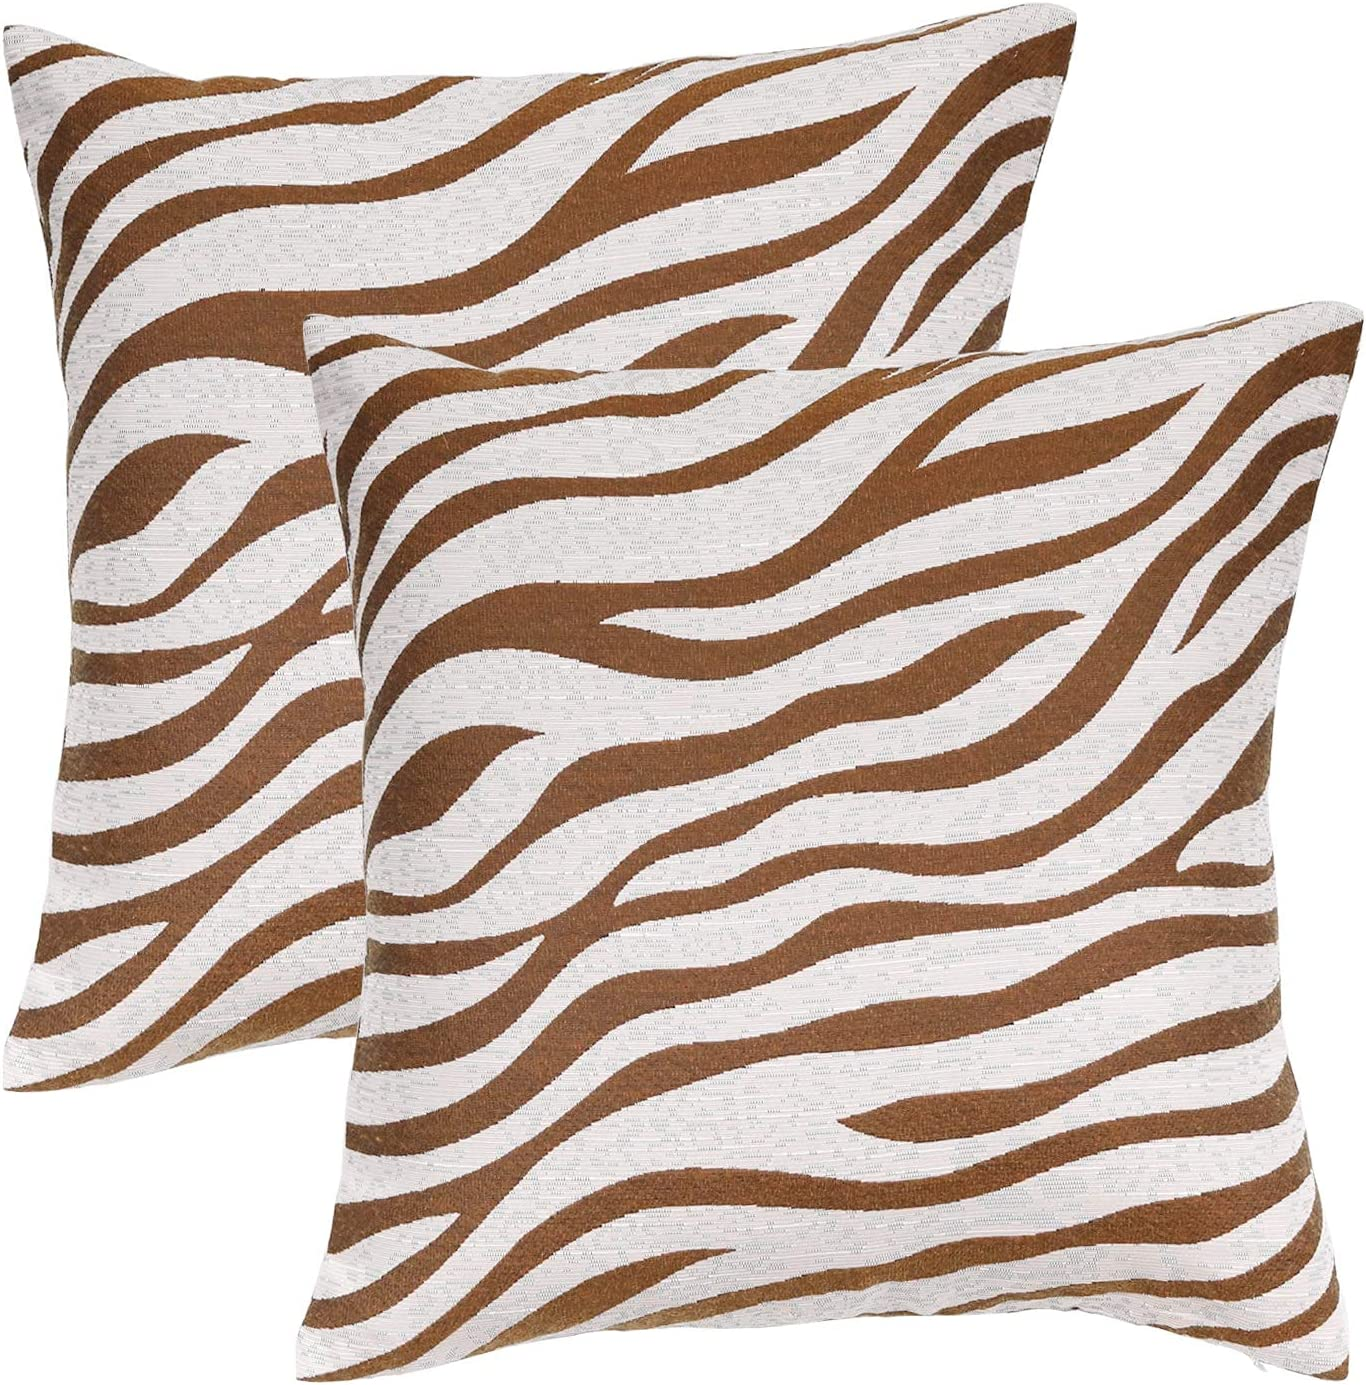 ChuloPony Large Zebra Pillow Covers 18 x 18, Couch Pillows for Living Room, Coffee Brown Stylish Zebra Home Decor Pillows,Outdoor Pillow Covers for Sofa, Armchair,car,Outdoor Party,Set of 2